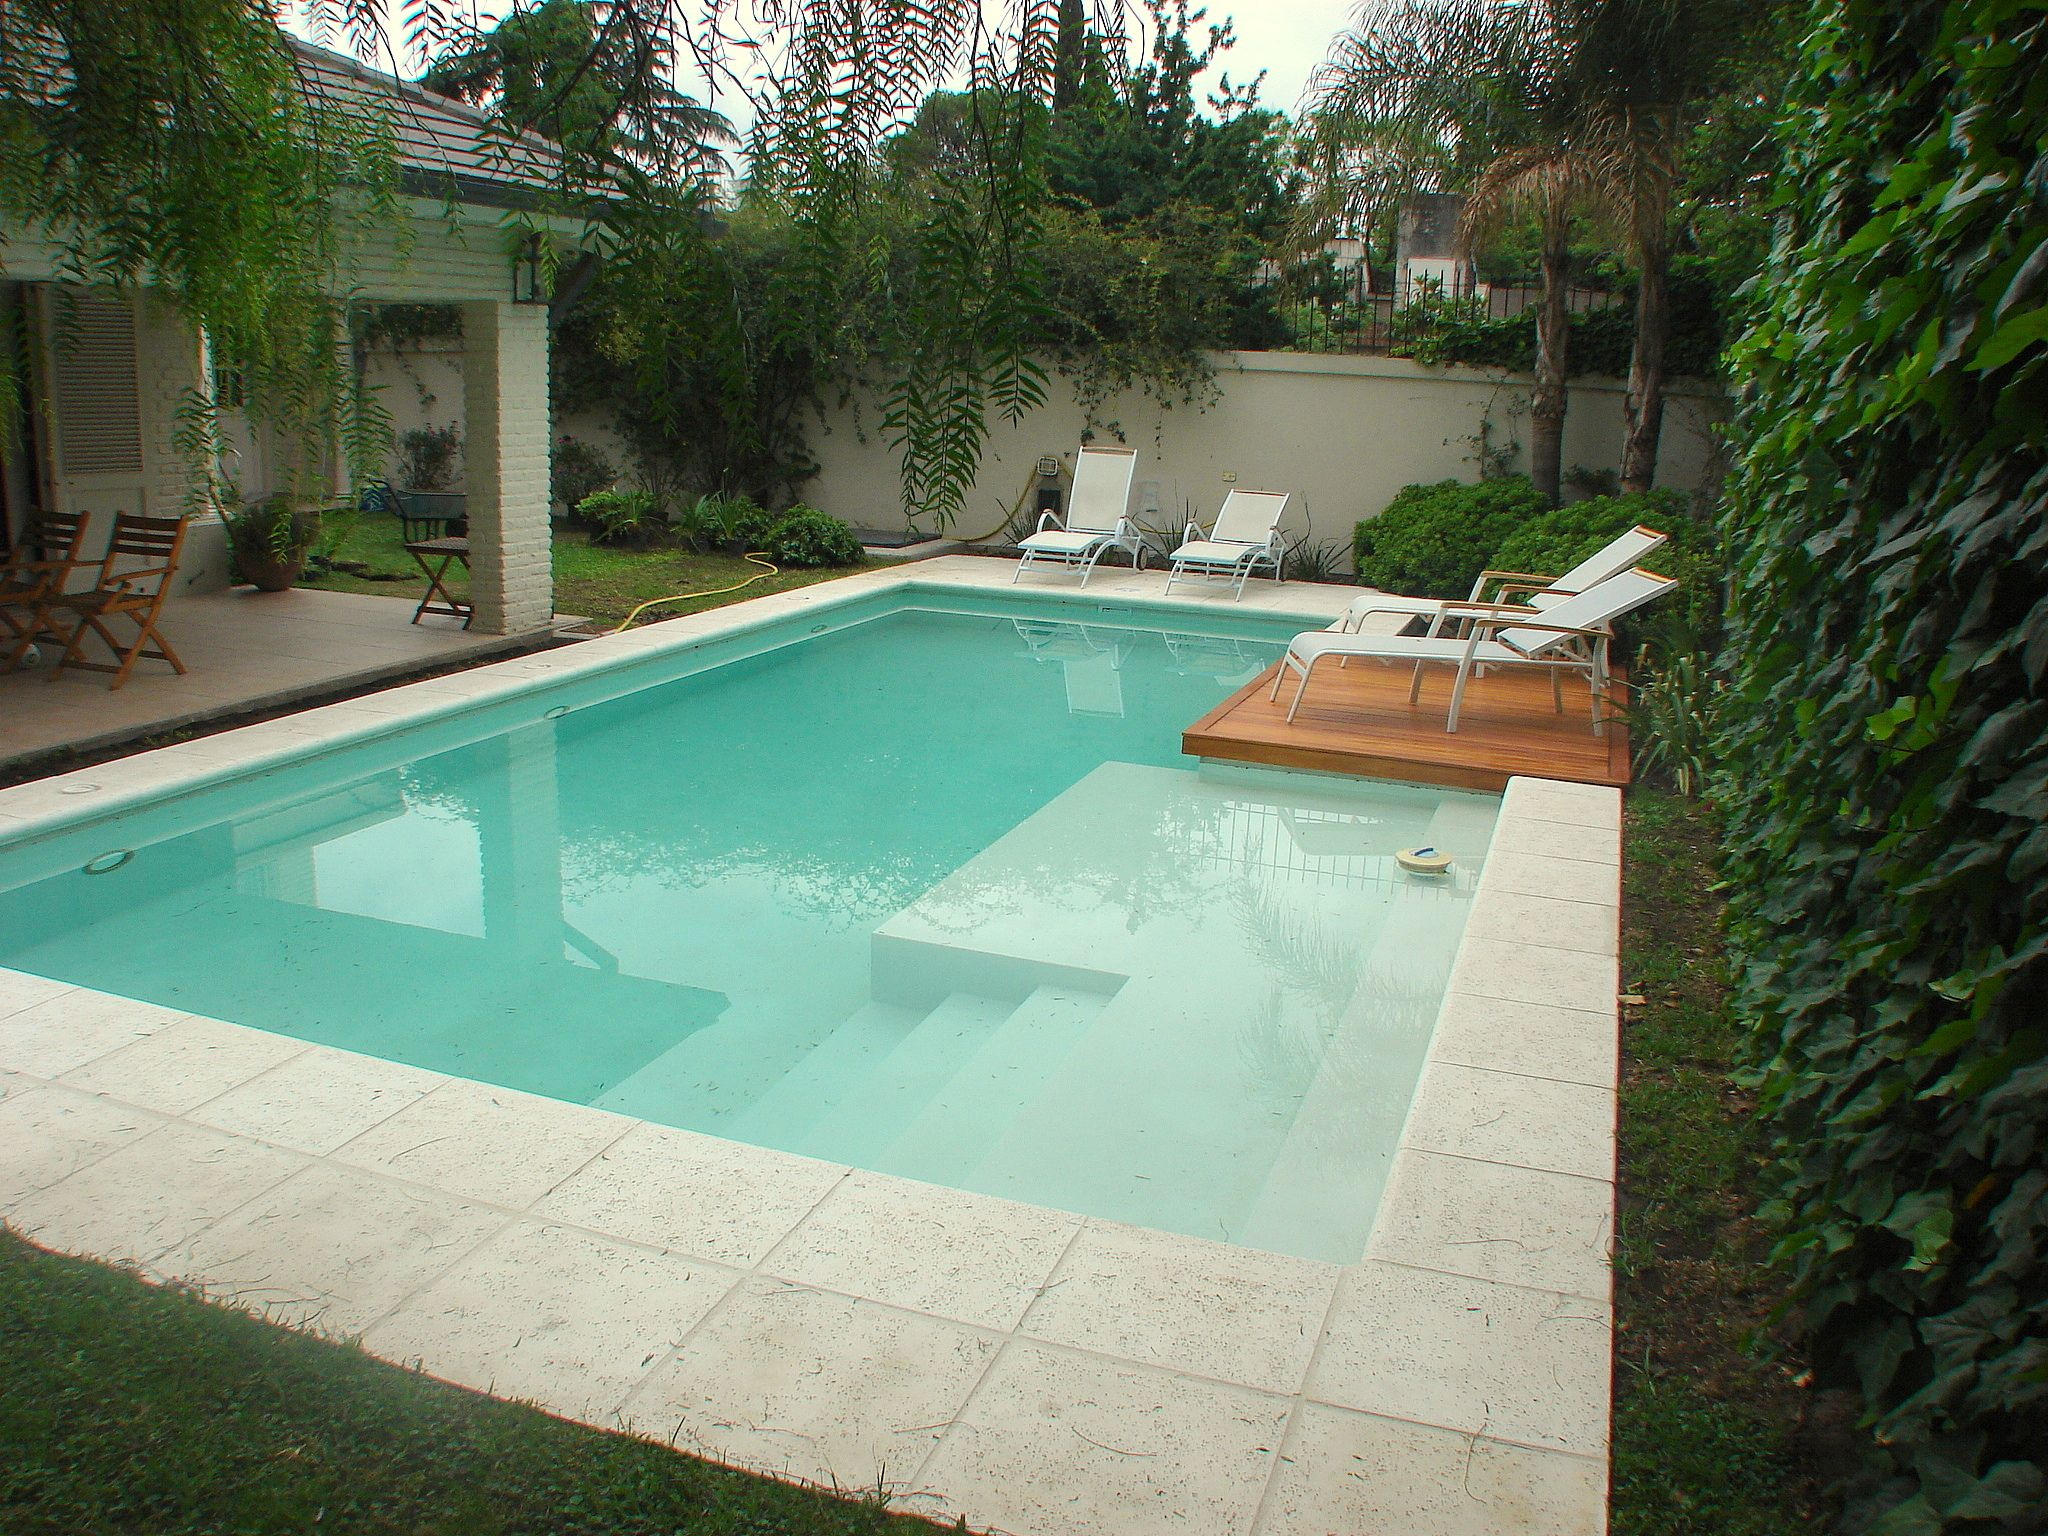 Piscina familiar swimmingpool deck de madera for Disenos de casas con alberca y jardin